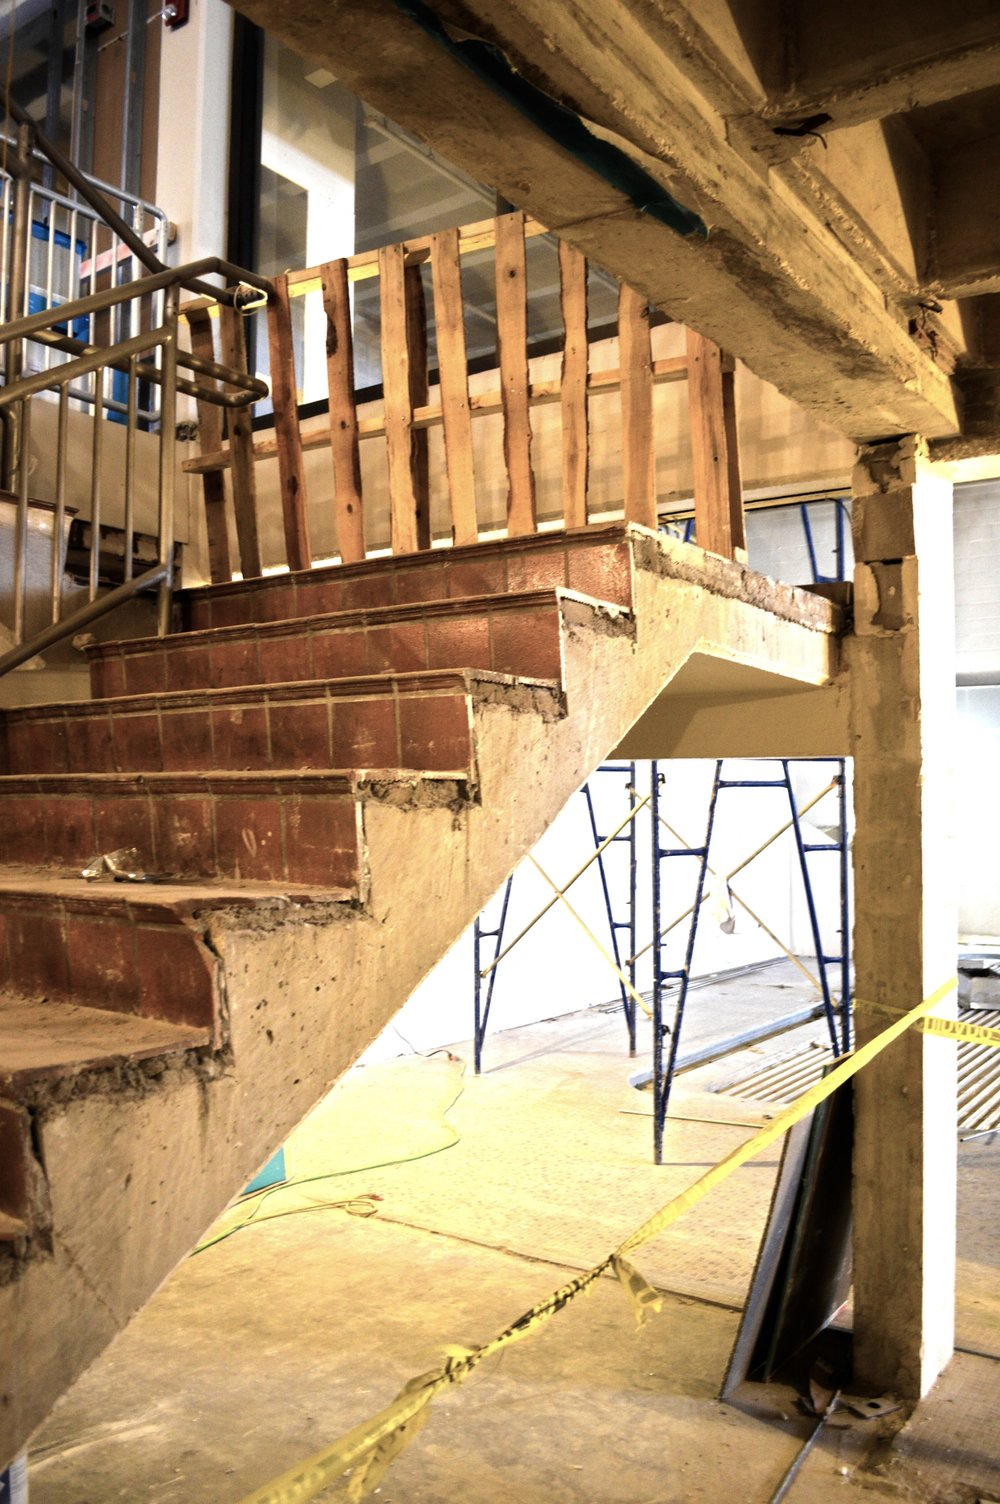 The original lobby stair has been stripped down to its basic forms in preparation for new guardrails and finishes in the basement lobby.